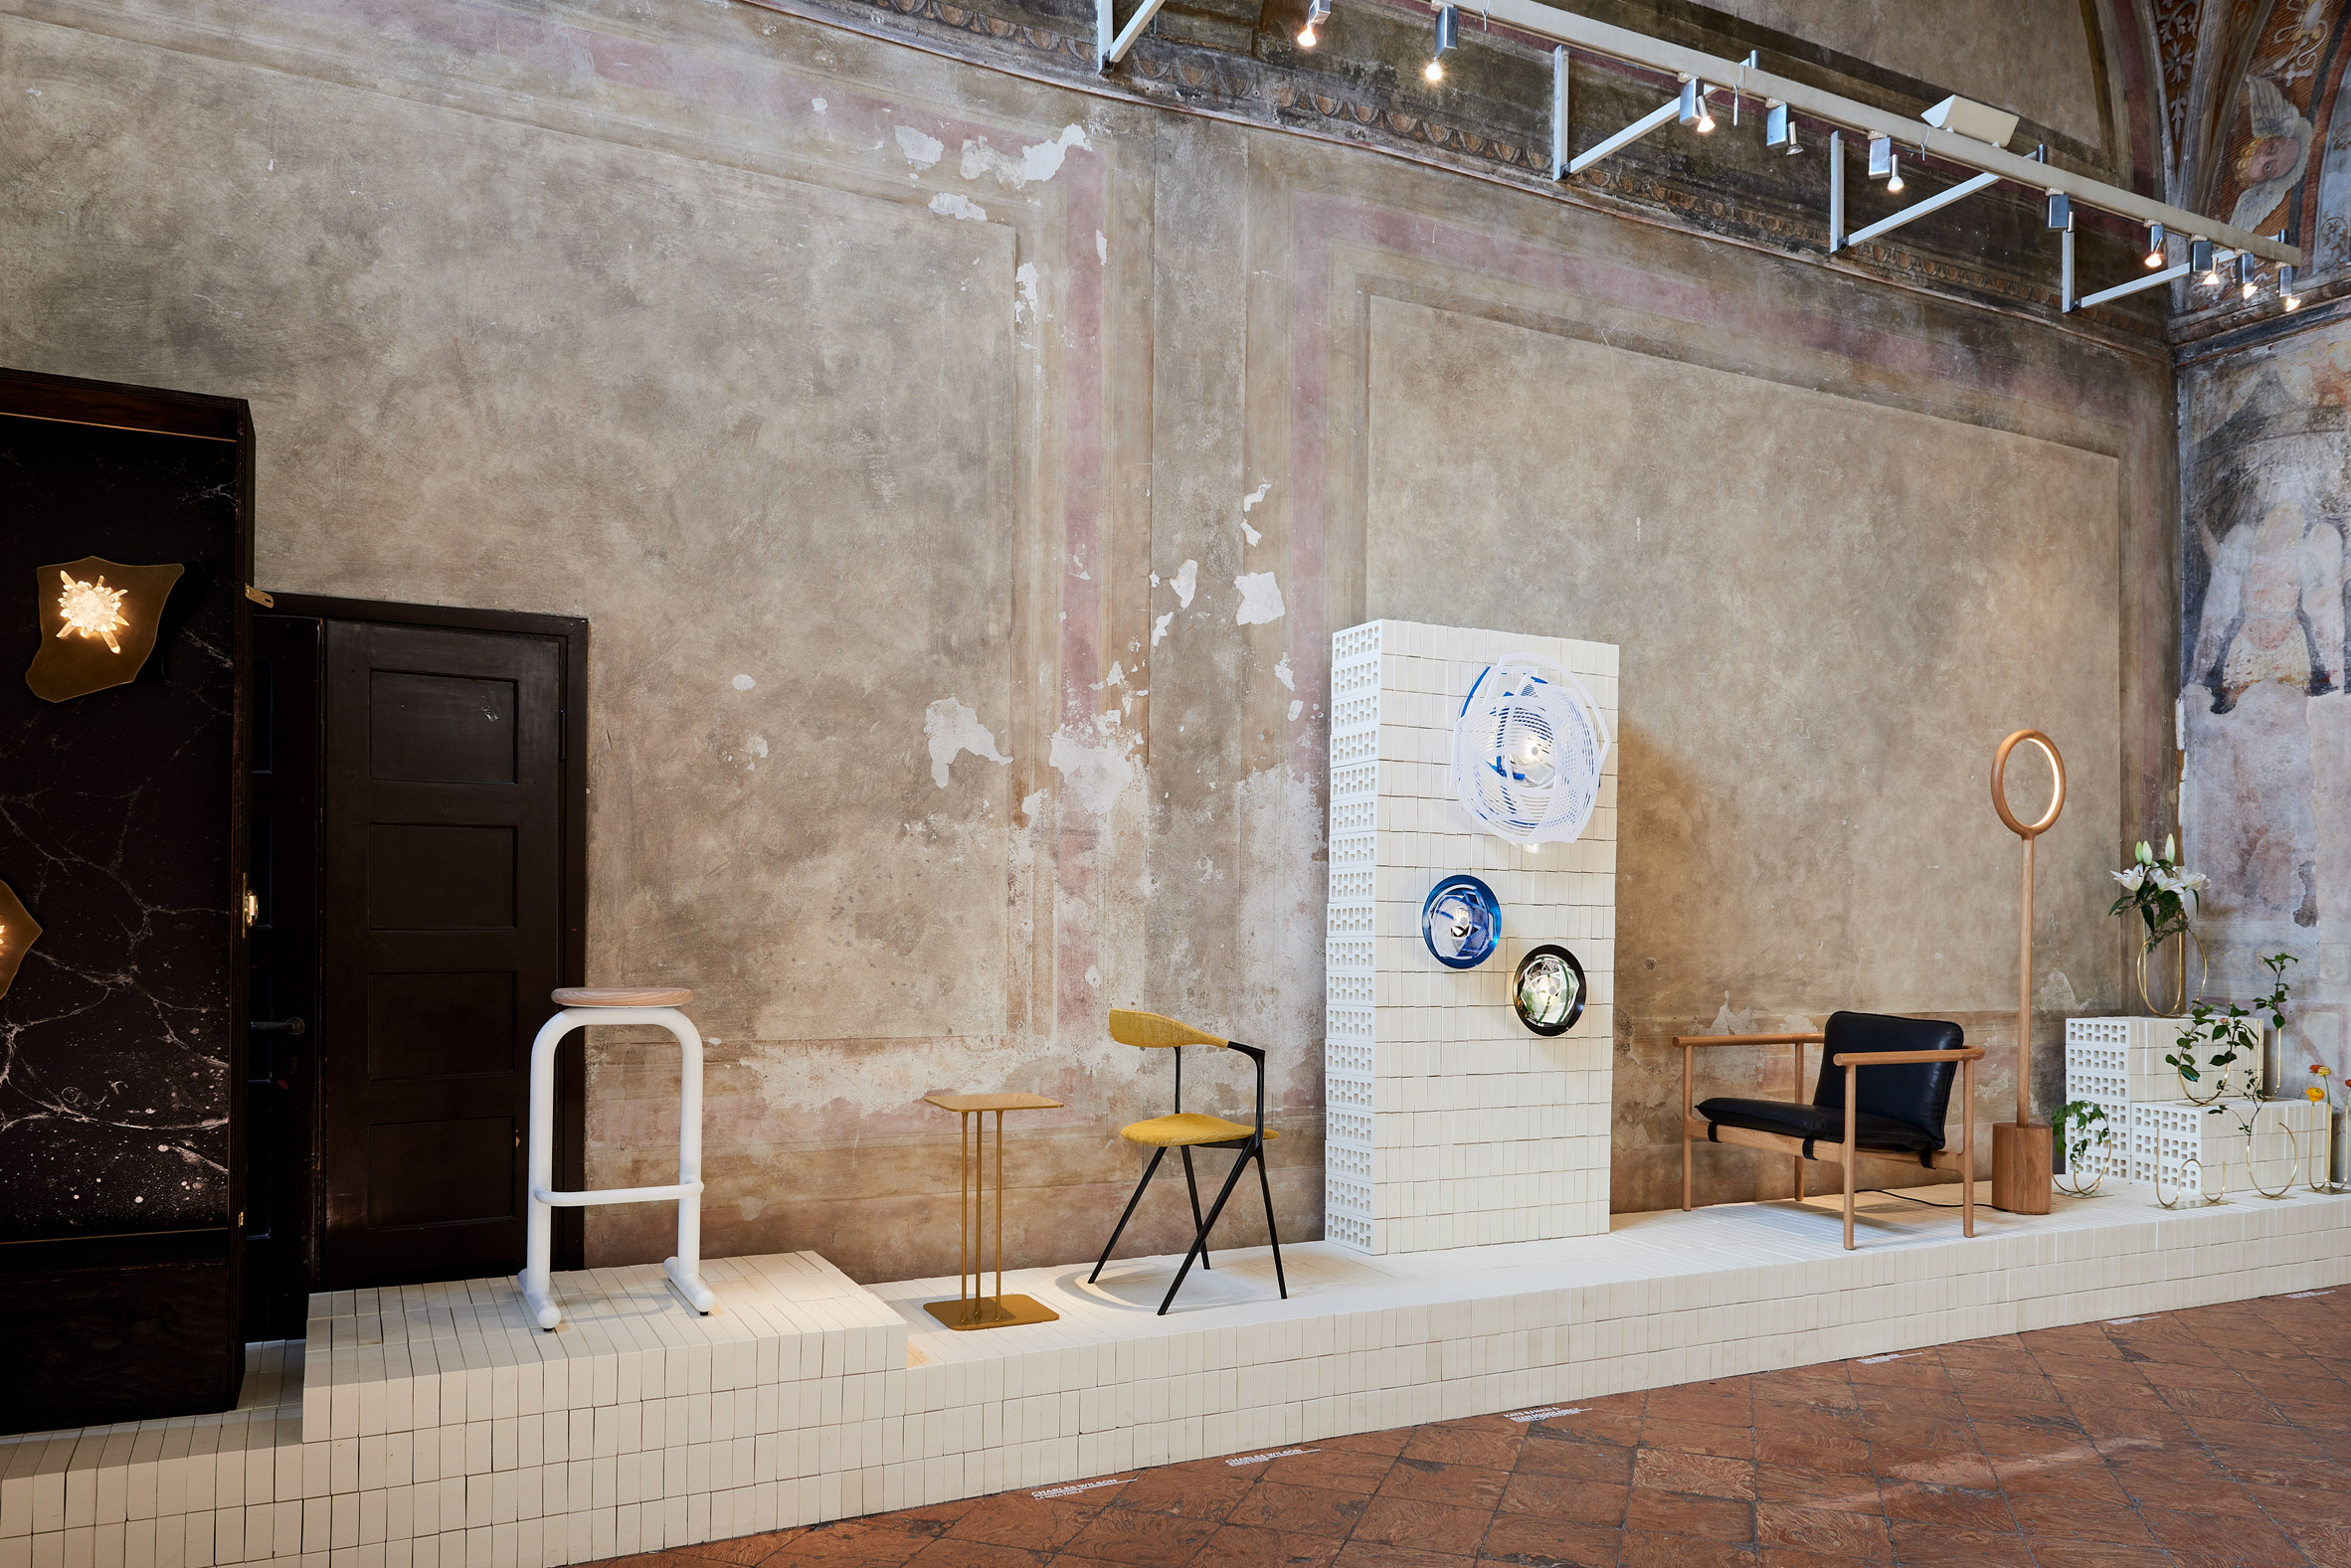 milan-local-design-australian-designers-lighting-furniture_dezeen_2364_col_10